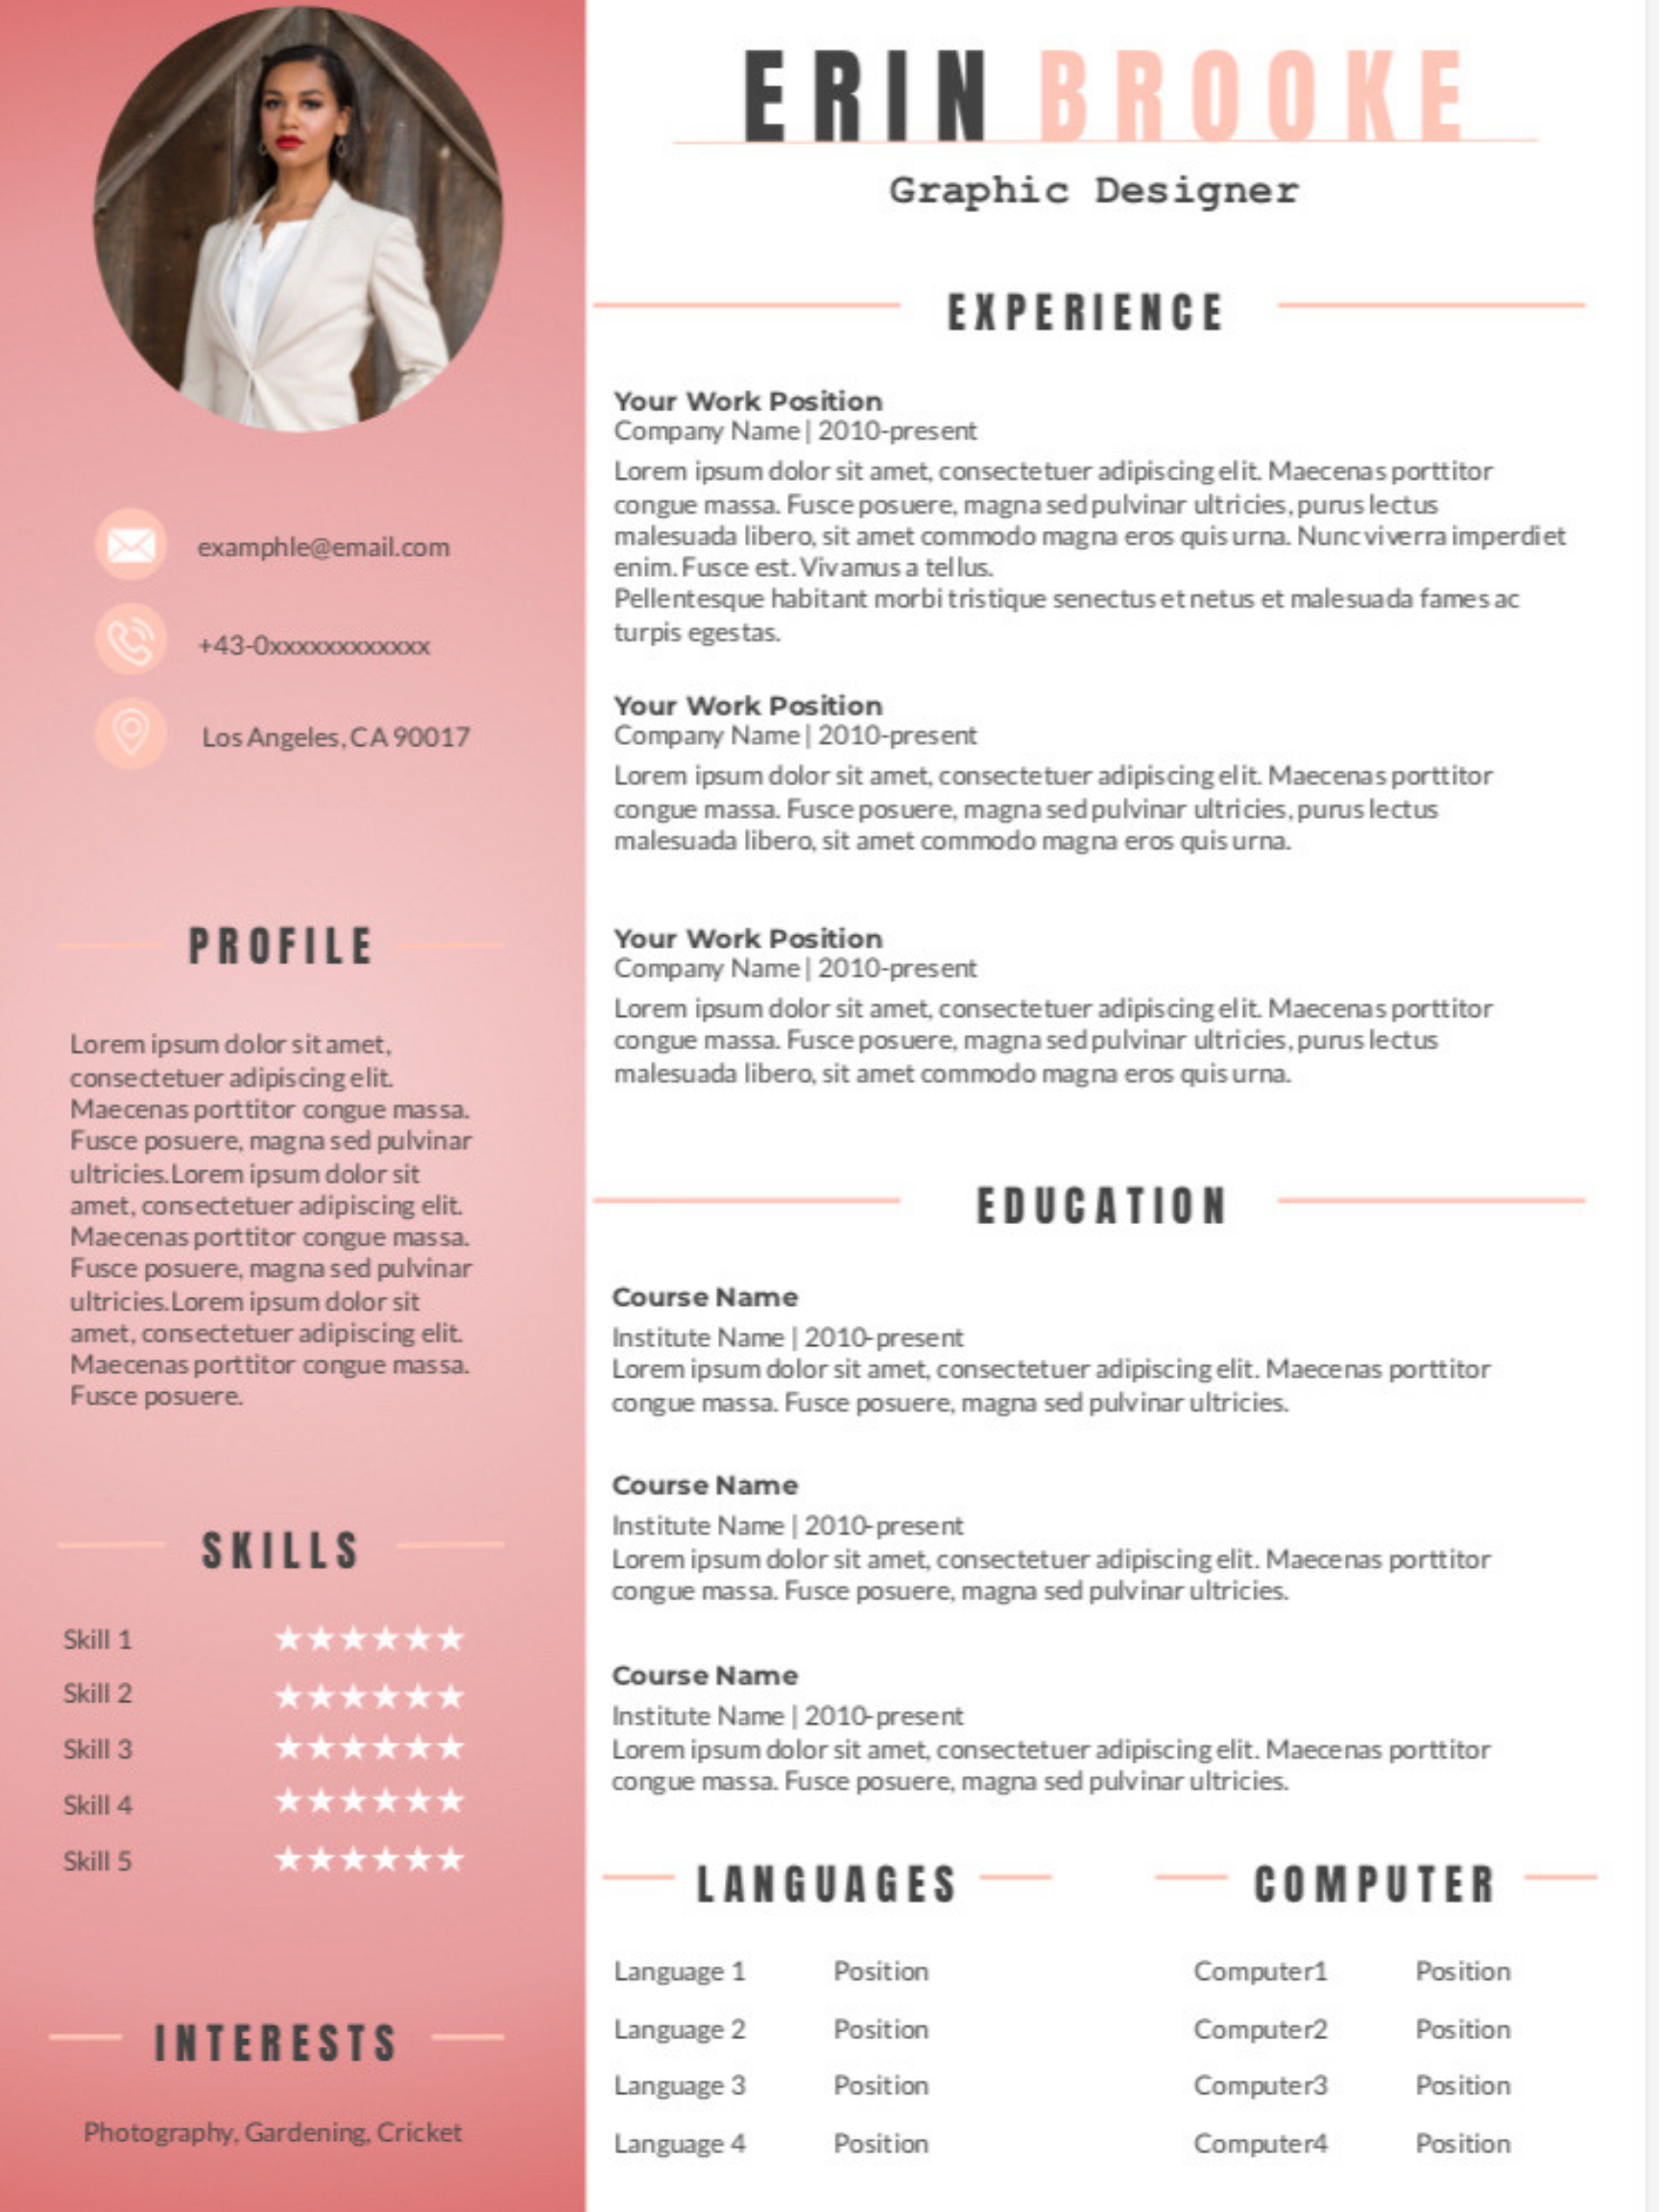 8 Undeniable Hacks For Crafting A Resume That Stands Out